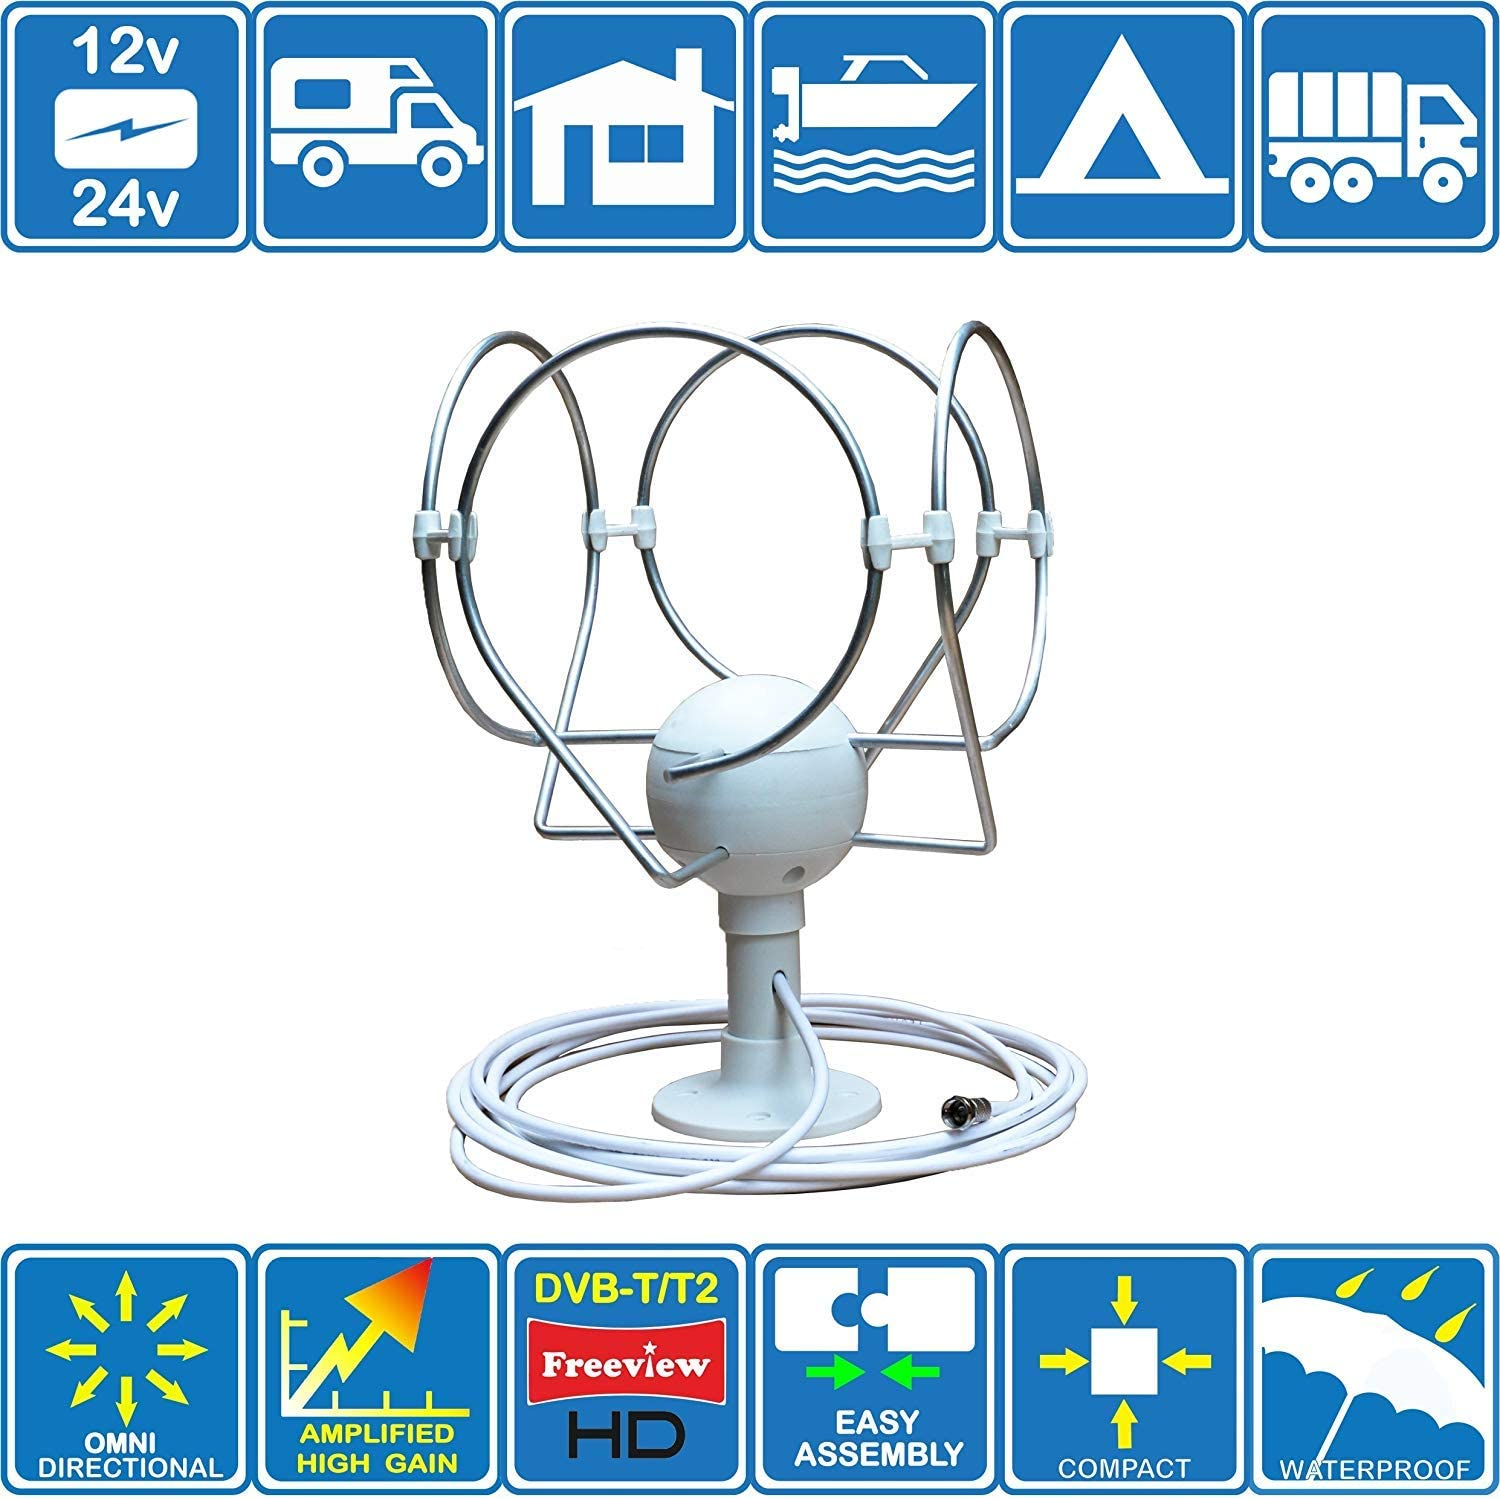 Maxview Omnimax MAGNETIC high quality TV antenna aerial DIGITAL CAMPER MOTORHOME